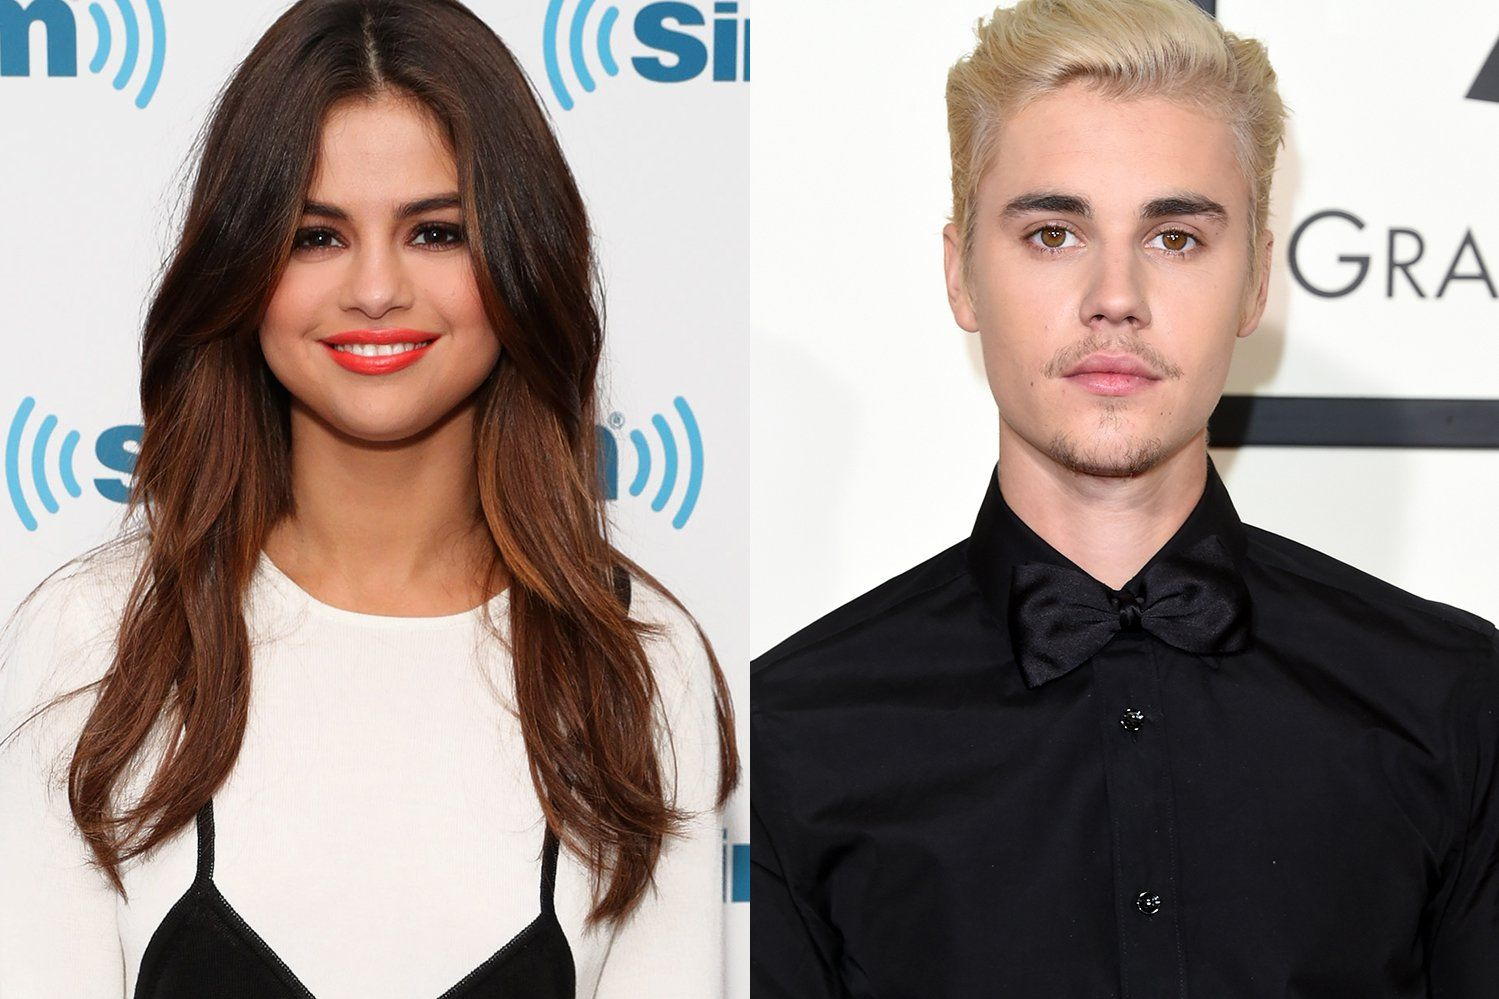 Will Selena Gomez And Justin Bieber Make New Red Carpet Debut At Amas Following Public Kiss Selena Gomez Justin Bieber Selena